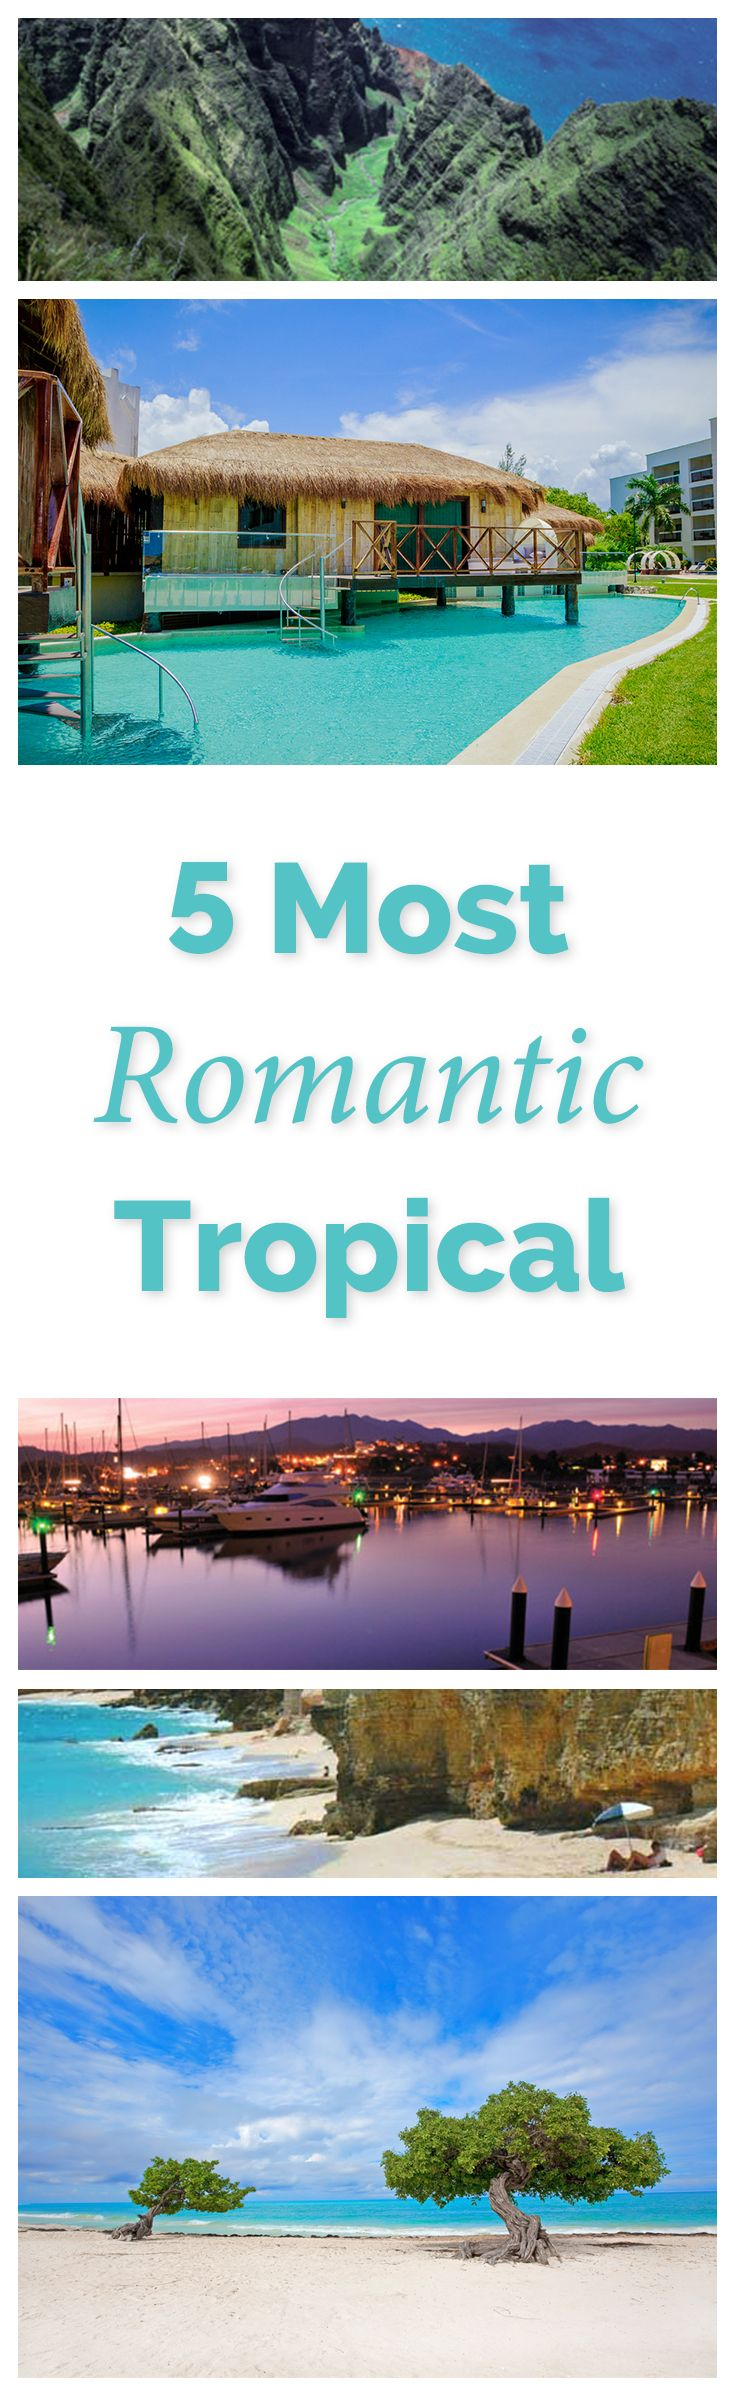 42 best images about travel tips on pinterest for Inexpensive tropical vacation spots